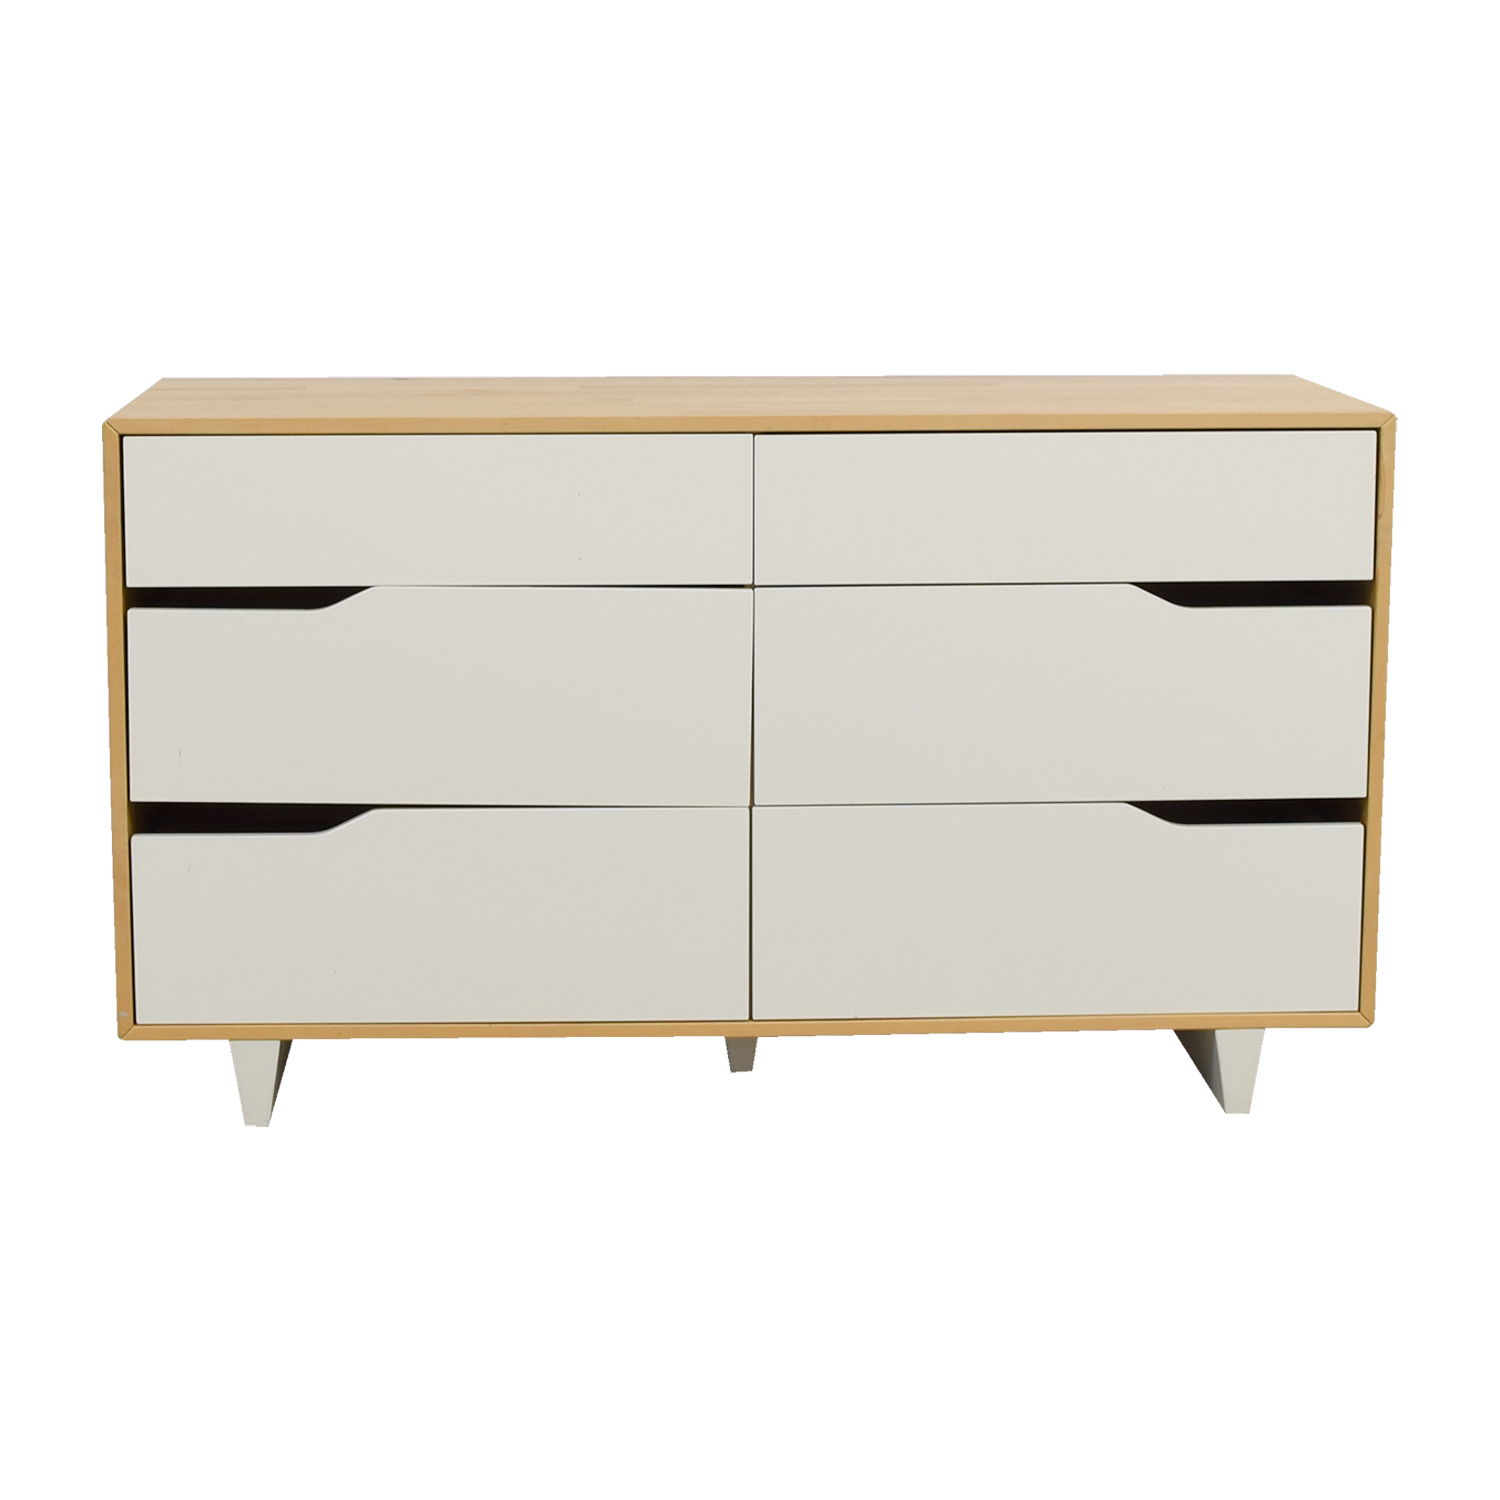 IKEA Askvoll White and Wood Six-Drawer Dresser IKEA